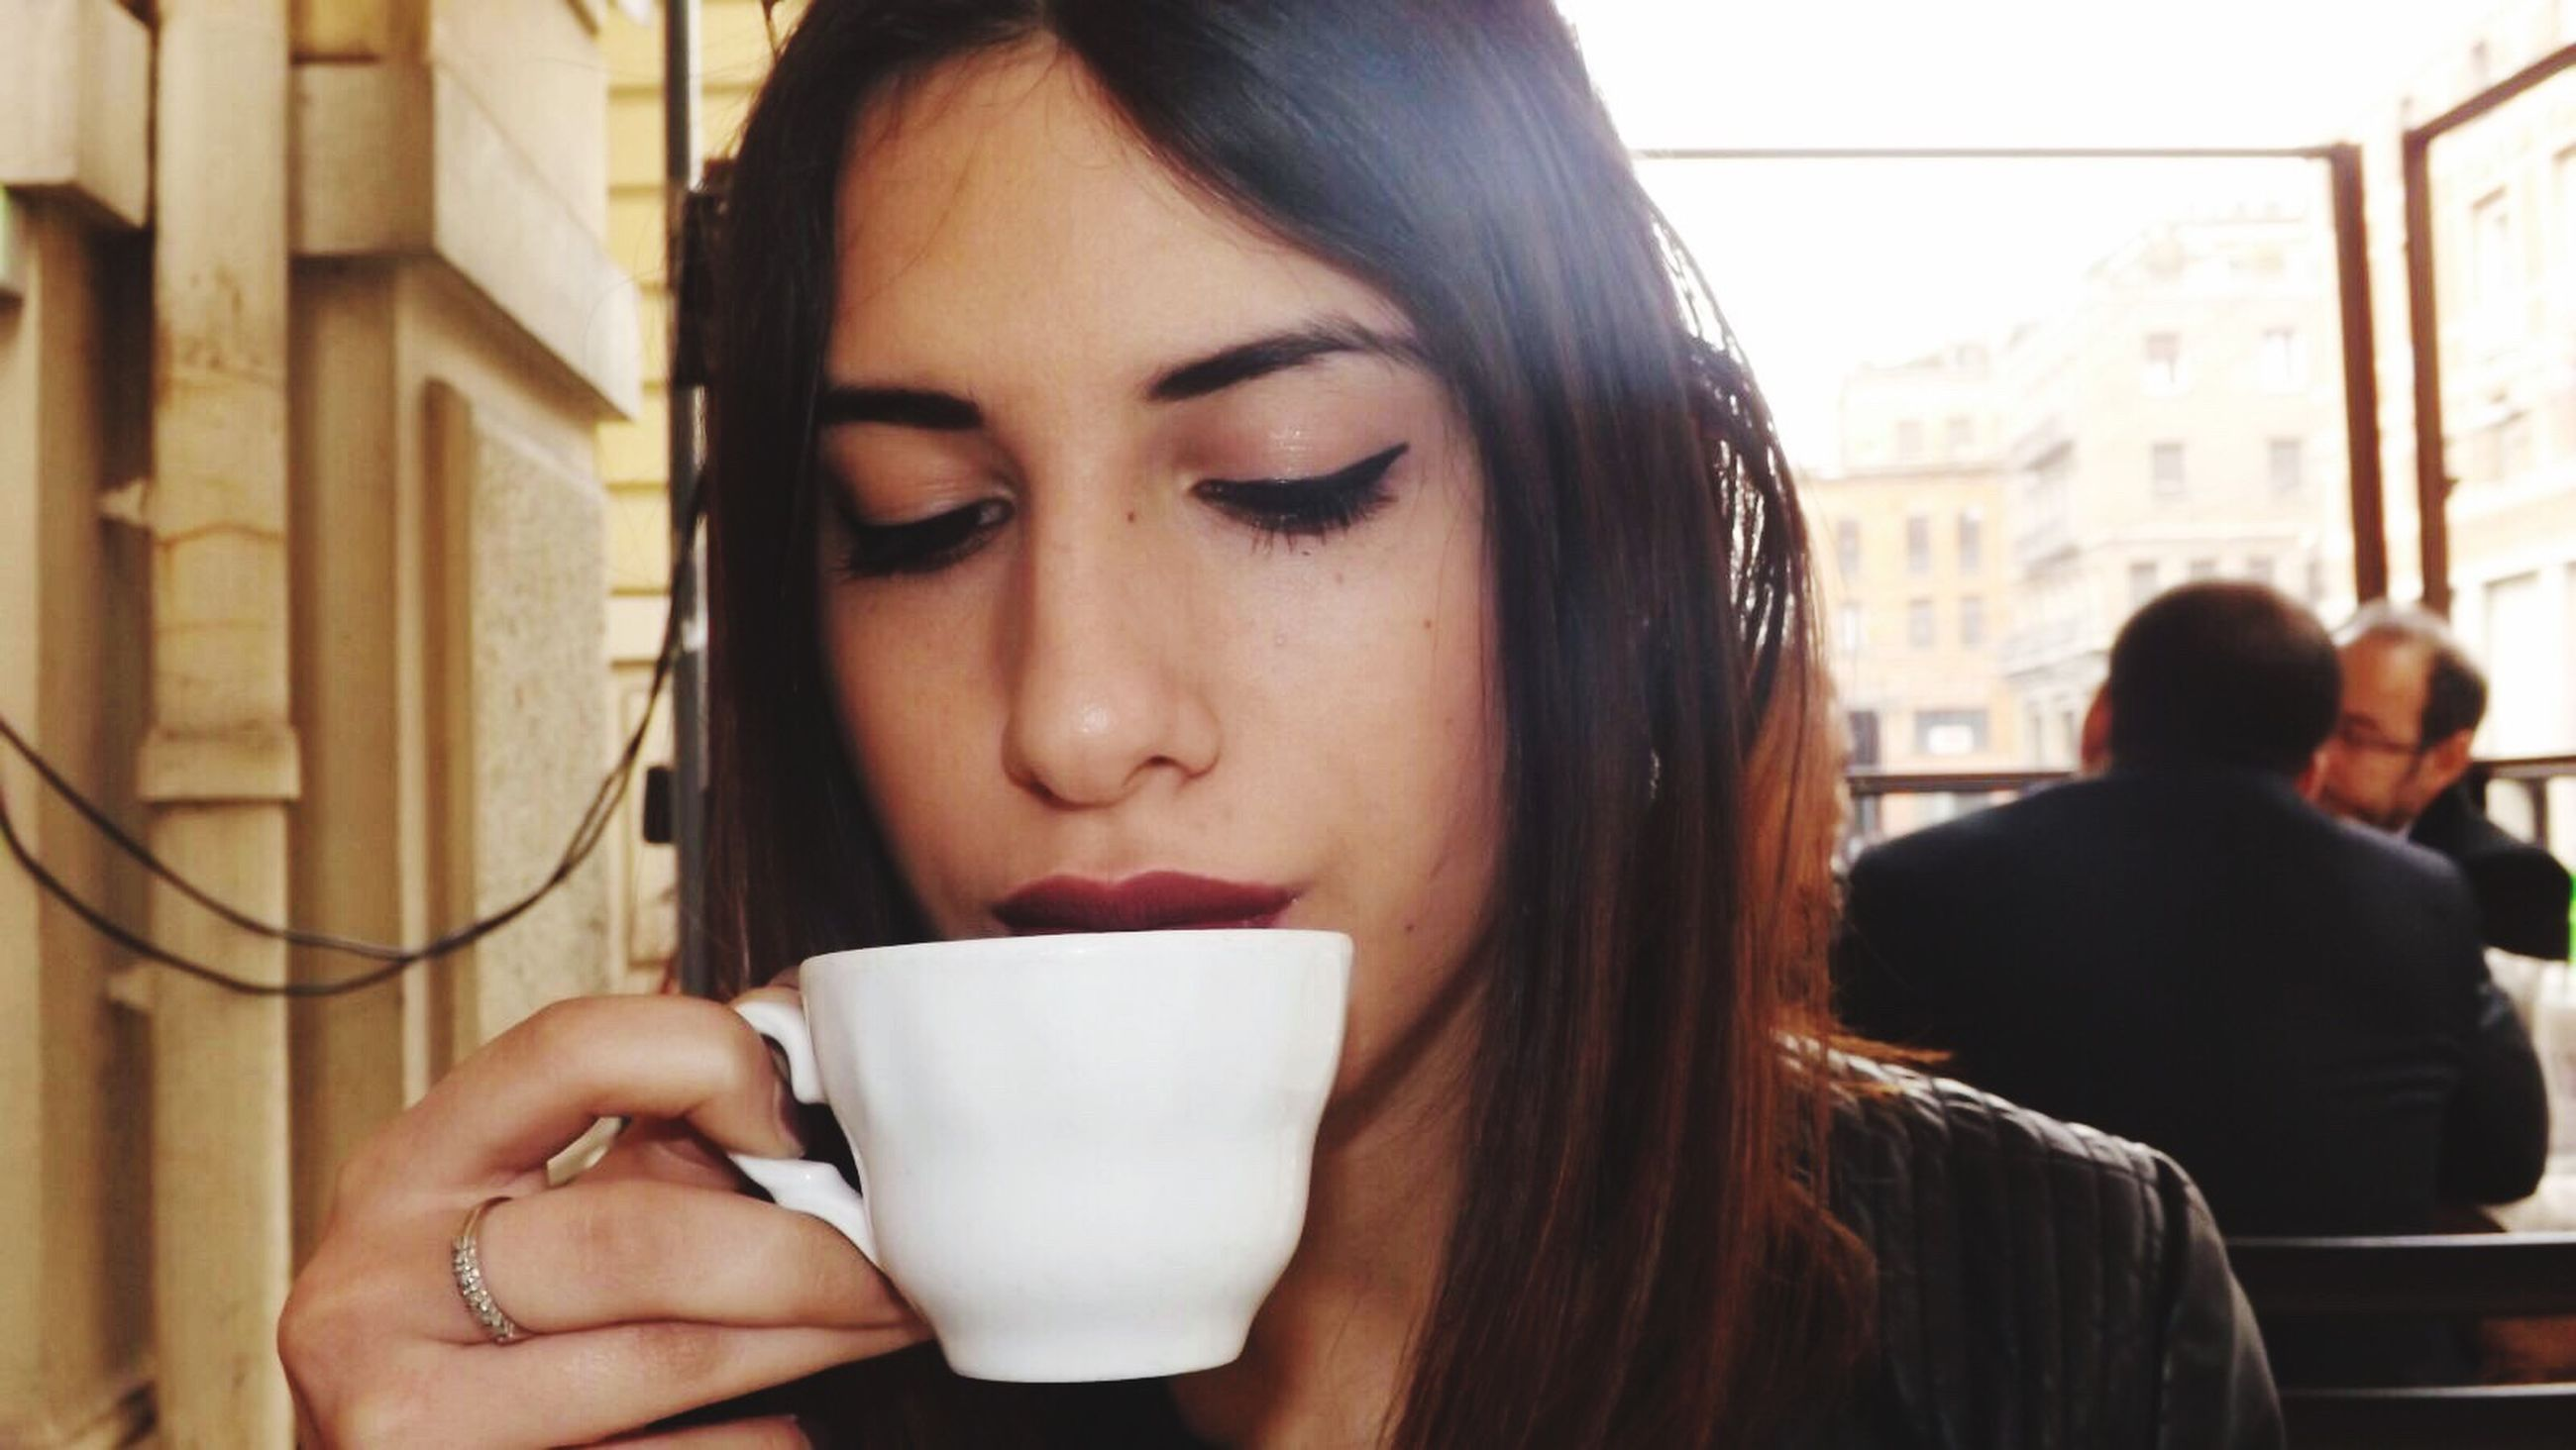 coffee - drink, coffee cup, young women, drink, drinking, real people, headshot, young adult, leisure activity, holding, lifestyles, women, cup, refreshment, one person, depression - sadness, coffee break, close-up, adult, only women, people, day, indoors, adults only, latte